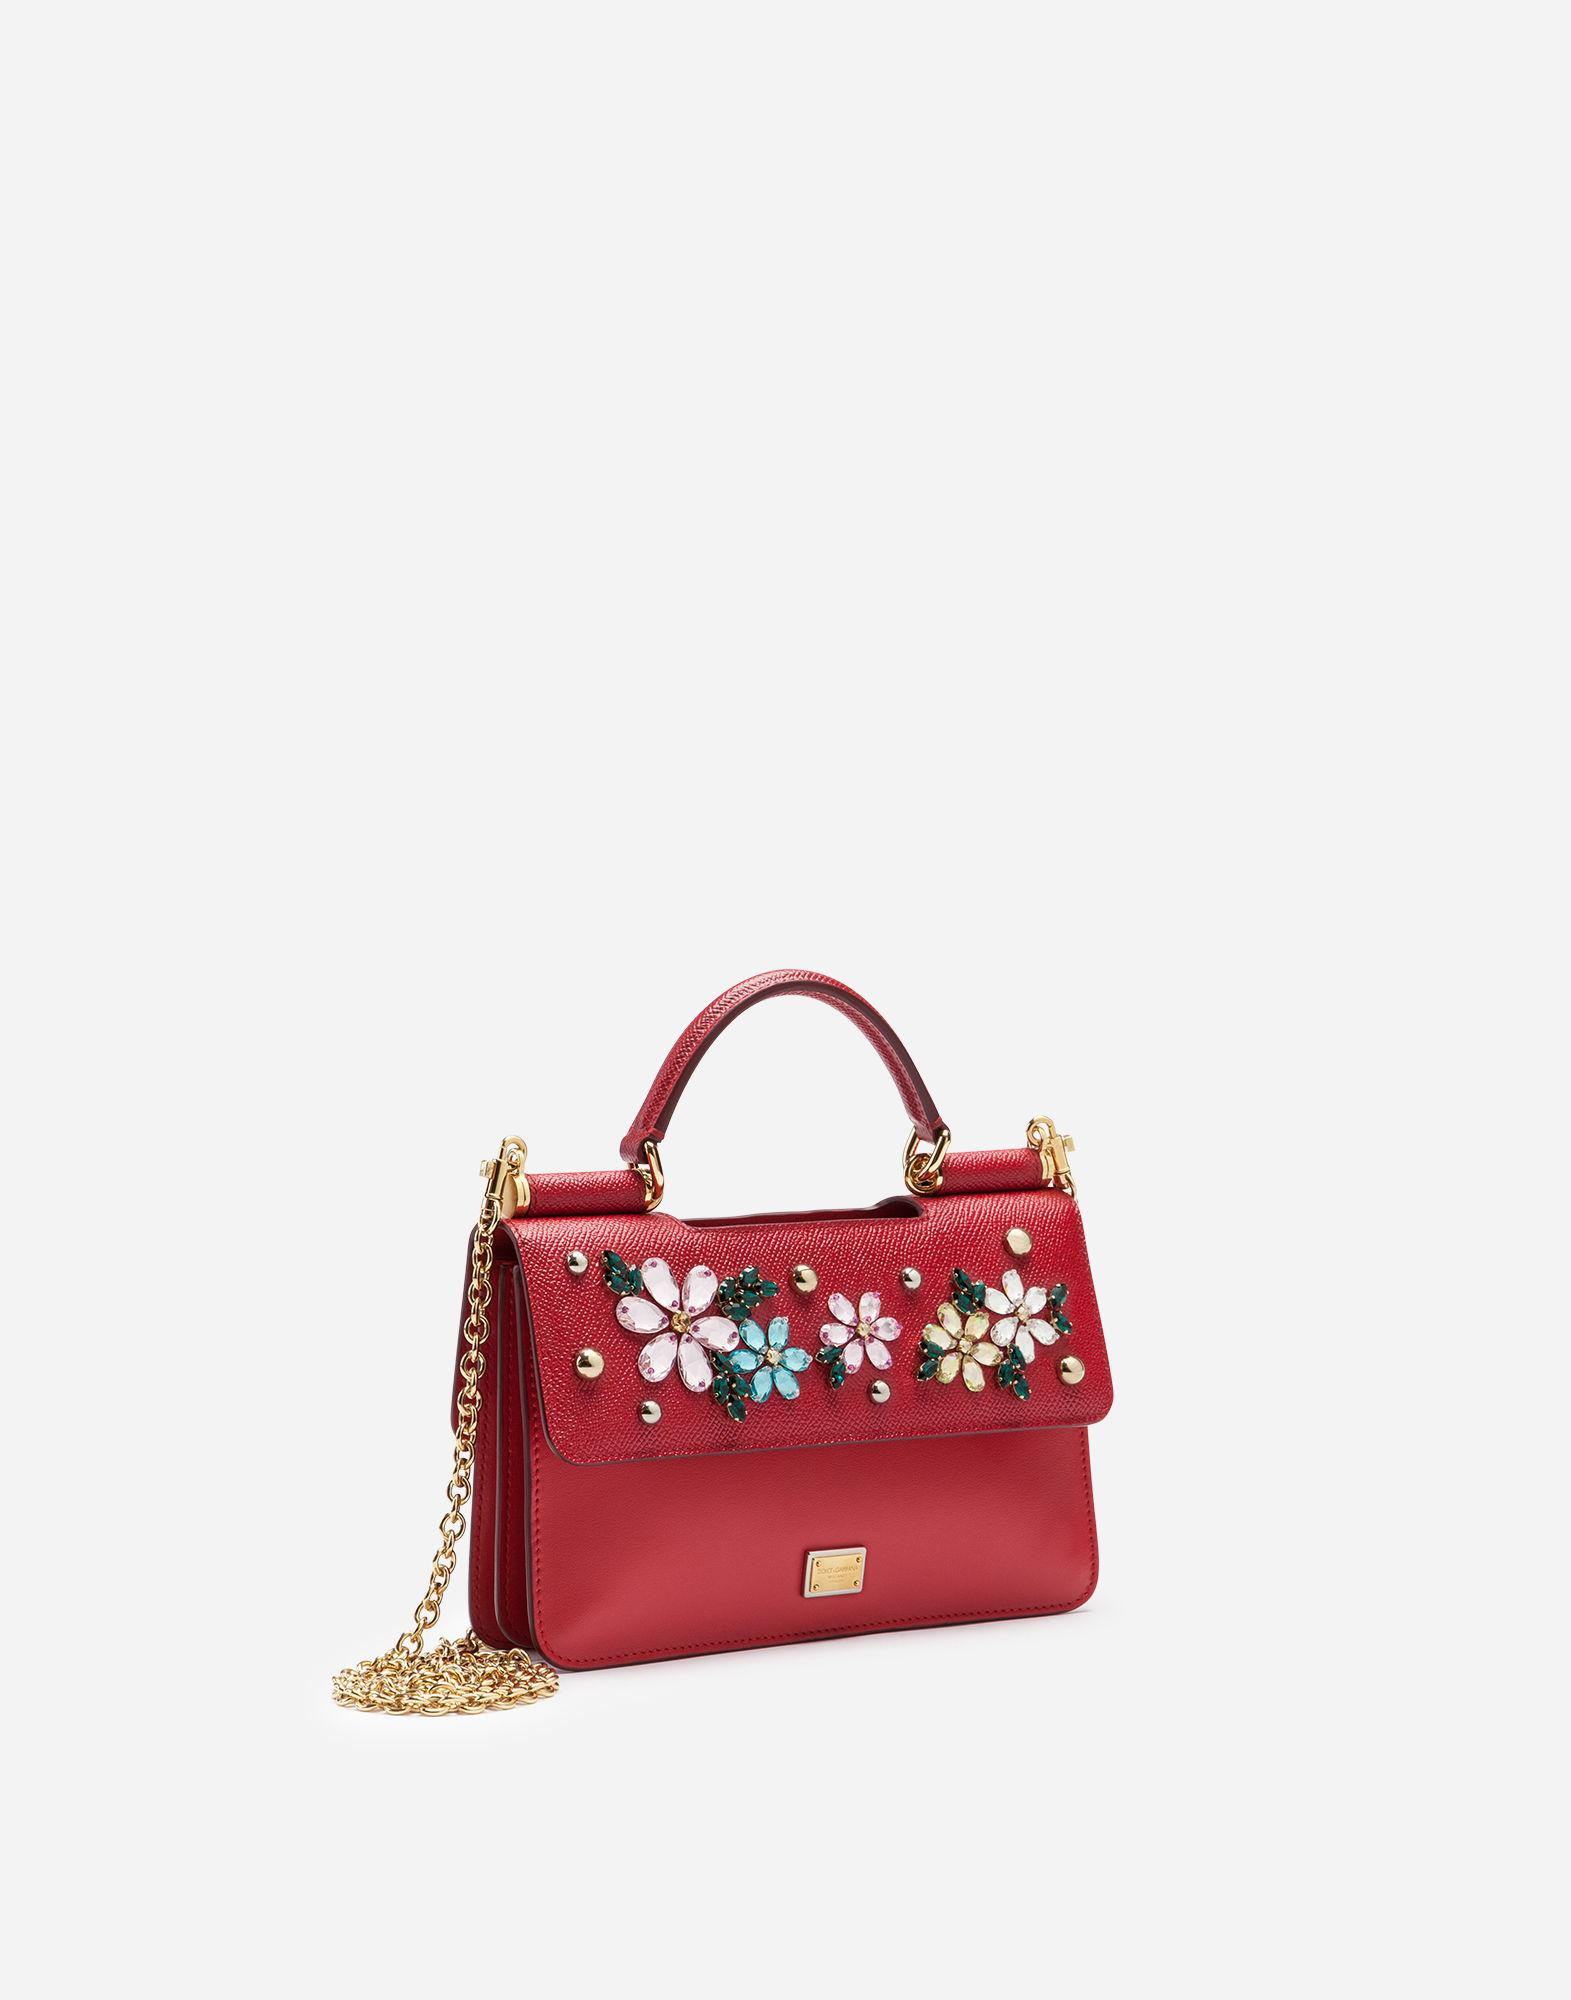 62d7428aa14 Lyst - Dolce   Gabbana Sicily Mini Bag In Dauphine Calfskin With Embroidery  in Red